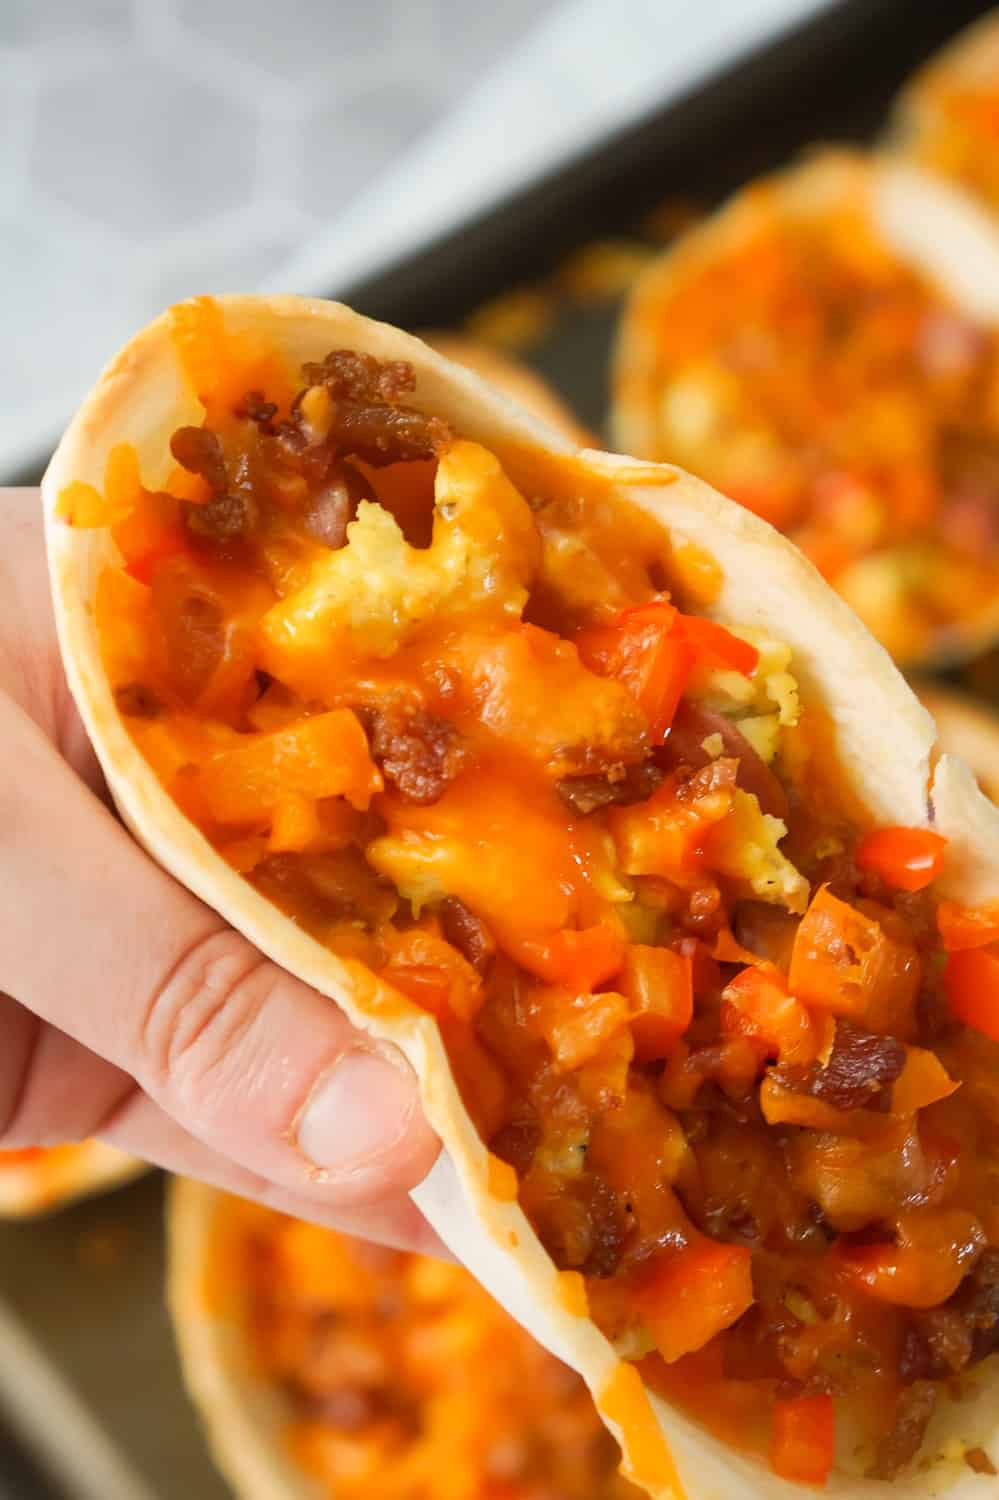 Sausage and Egg Breakfast Tacos are a fun and easy breakfast recipe. These breakfast tacos are made in Old El Paso tortilla bowls and loaded with eggs, maple breakfast sausage, cheddar cheese, sweet bell peppers and bacon.